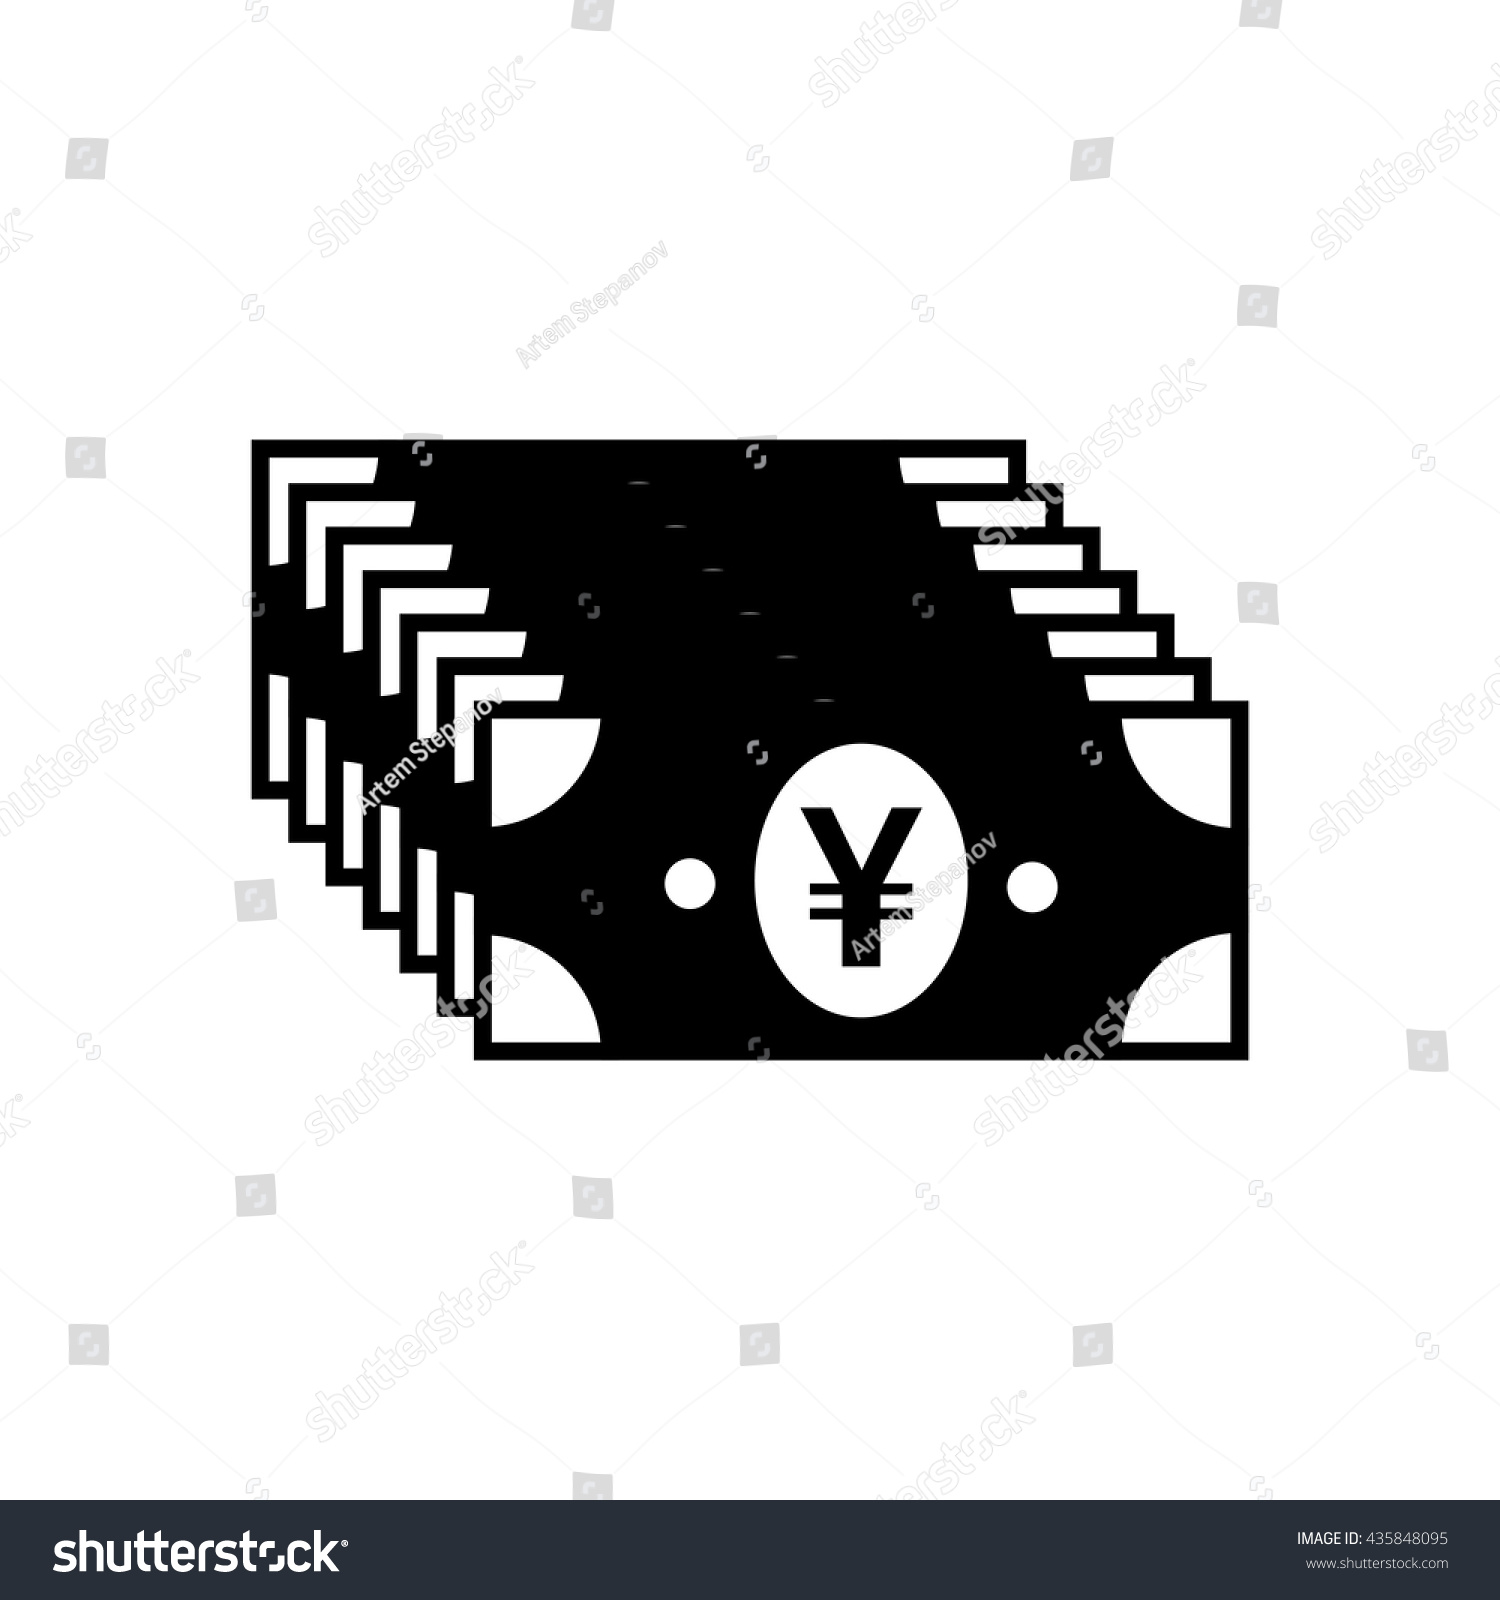 Japanese yen chinese yuan currency symbol stock vector 435848095 japanese yen or chinese yuan currency symbol flat icon for apps and websites biocorpaavc